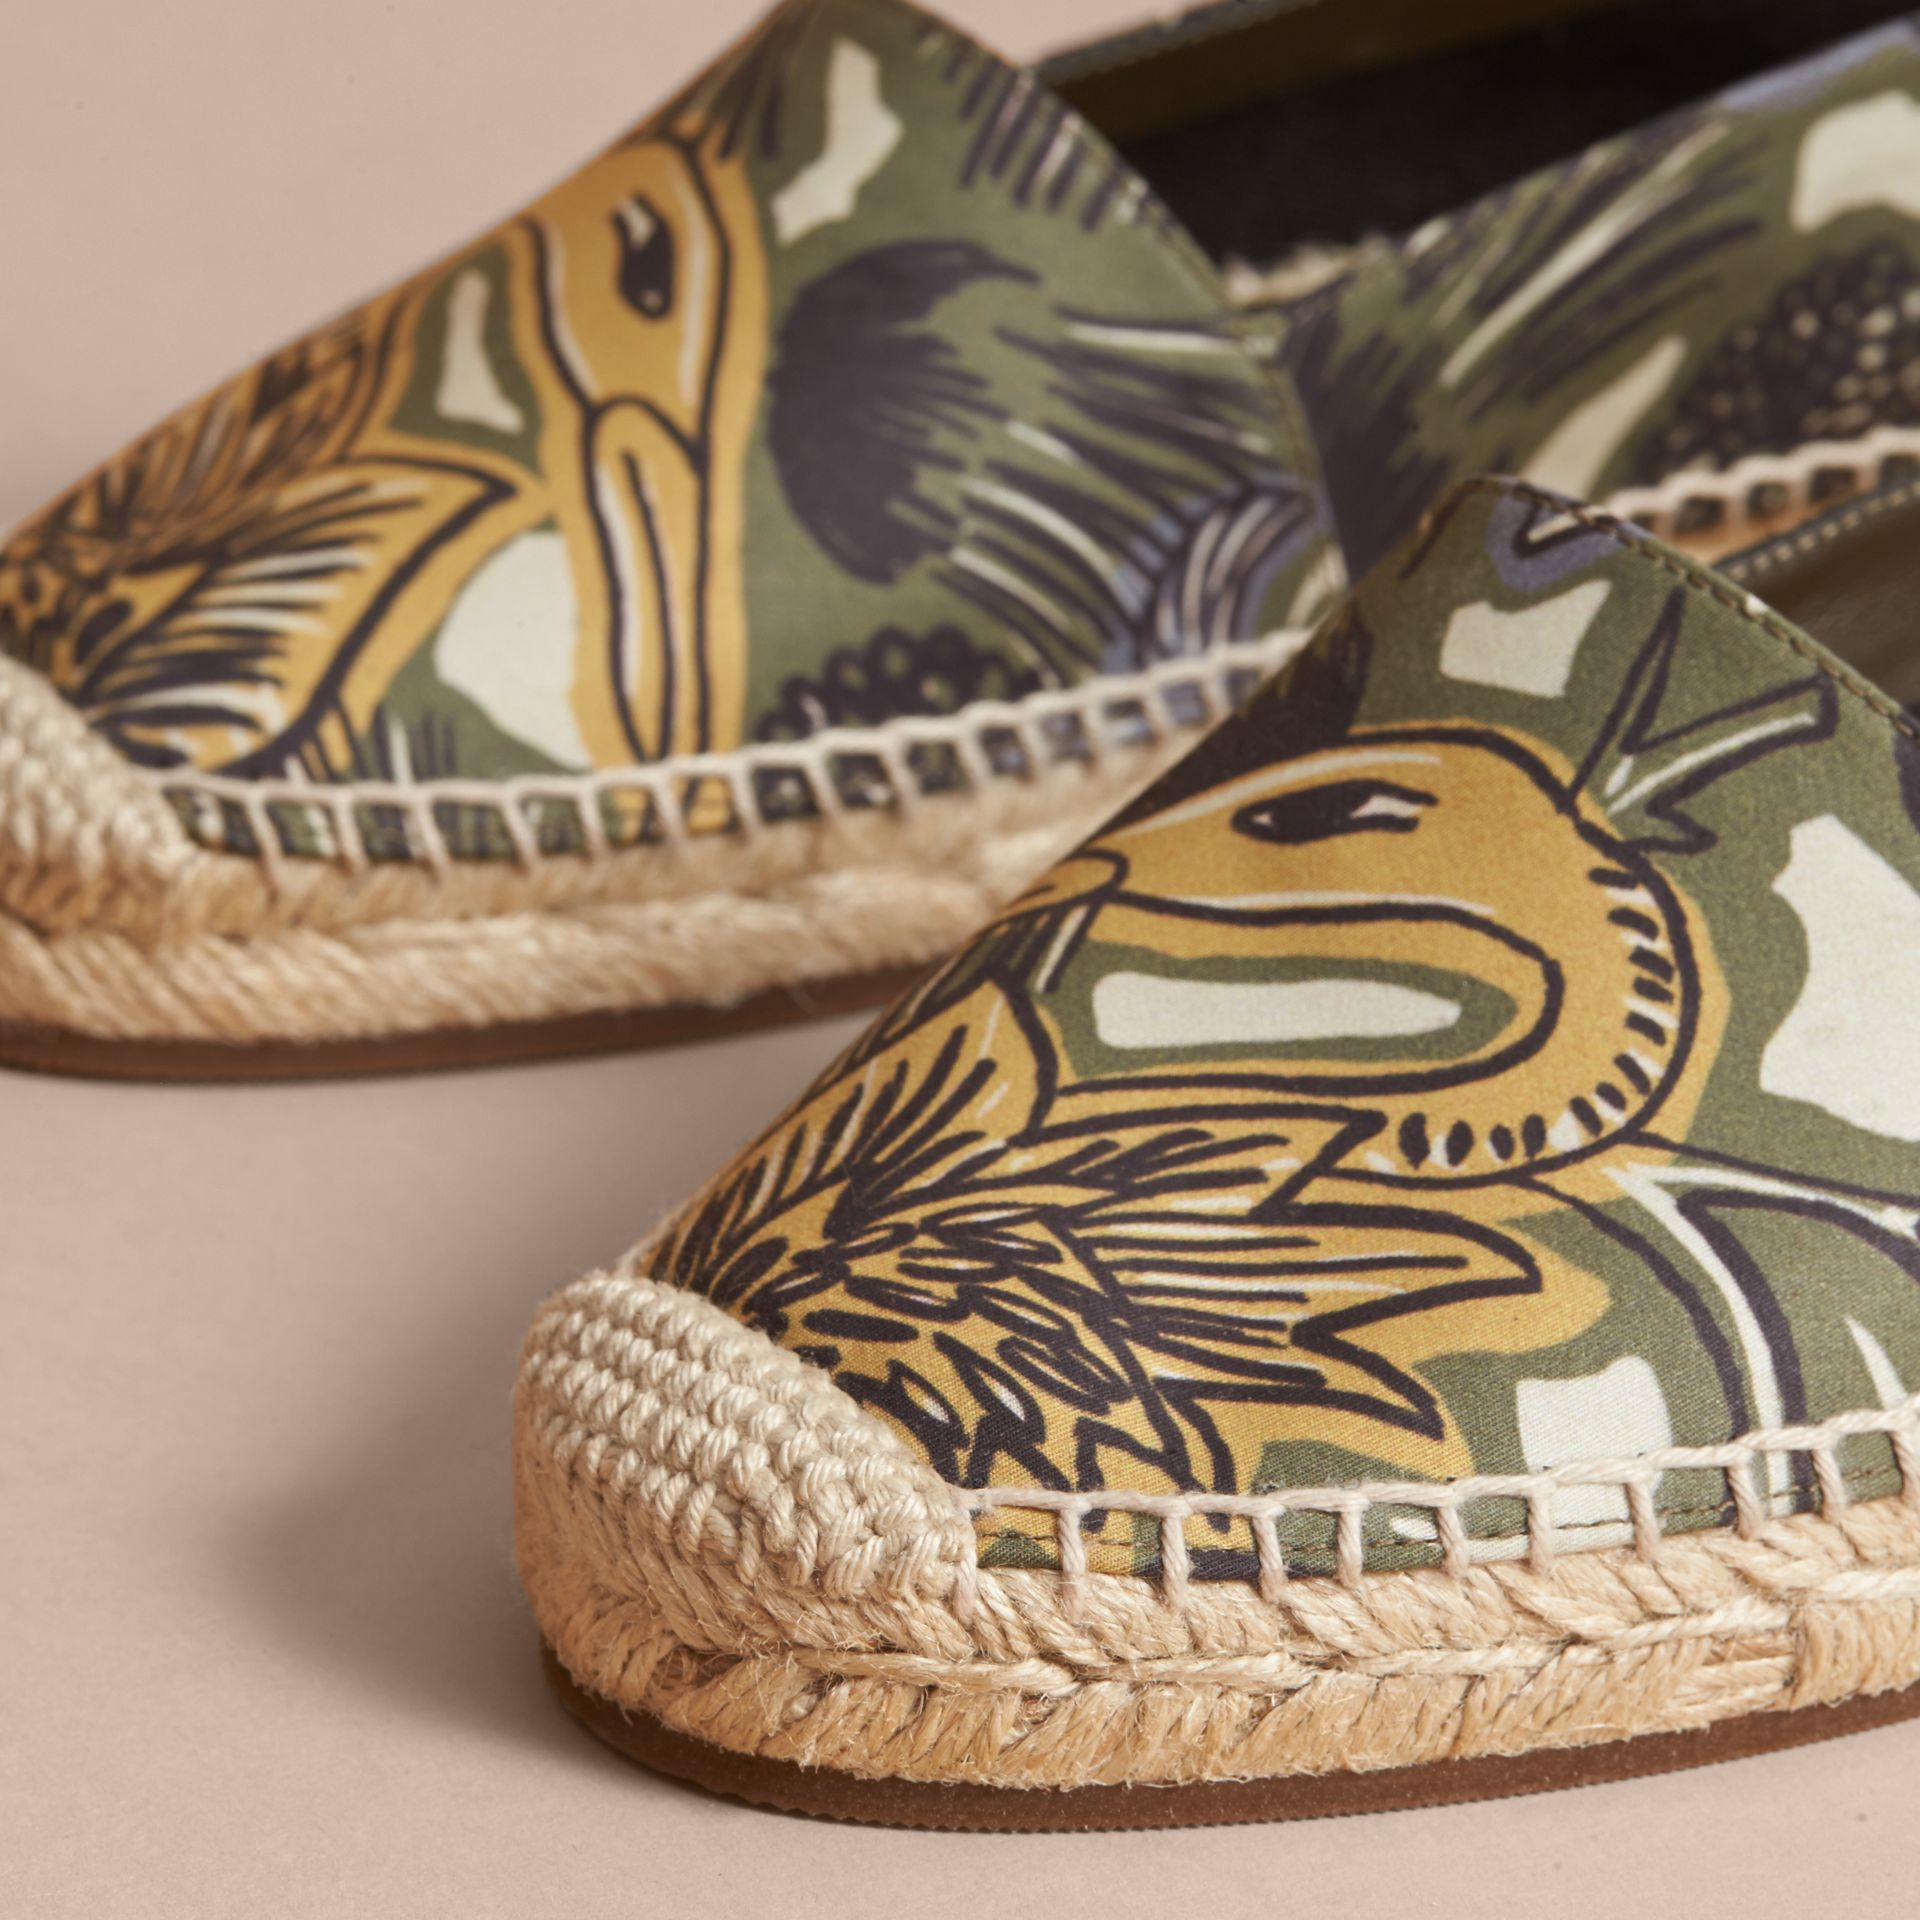 Beasts Print Cotton Blend Espadrilles in Clay Green - Women | Burberry - gallery image 2